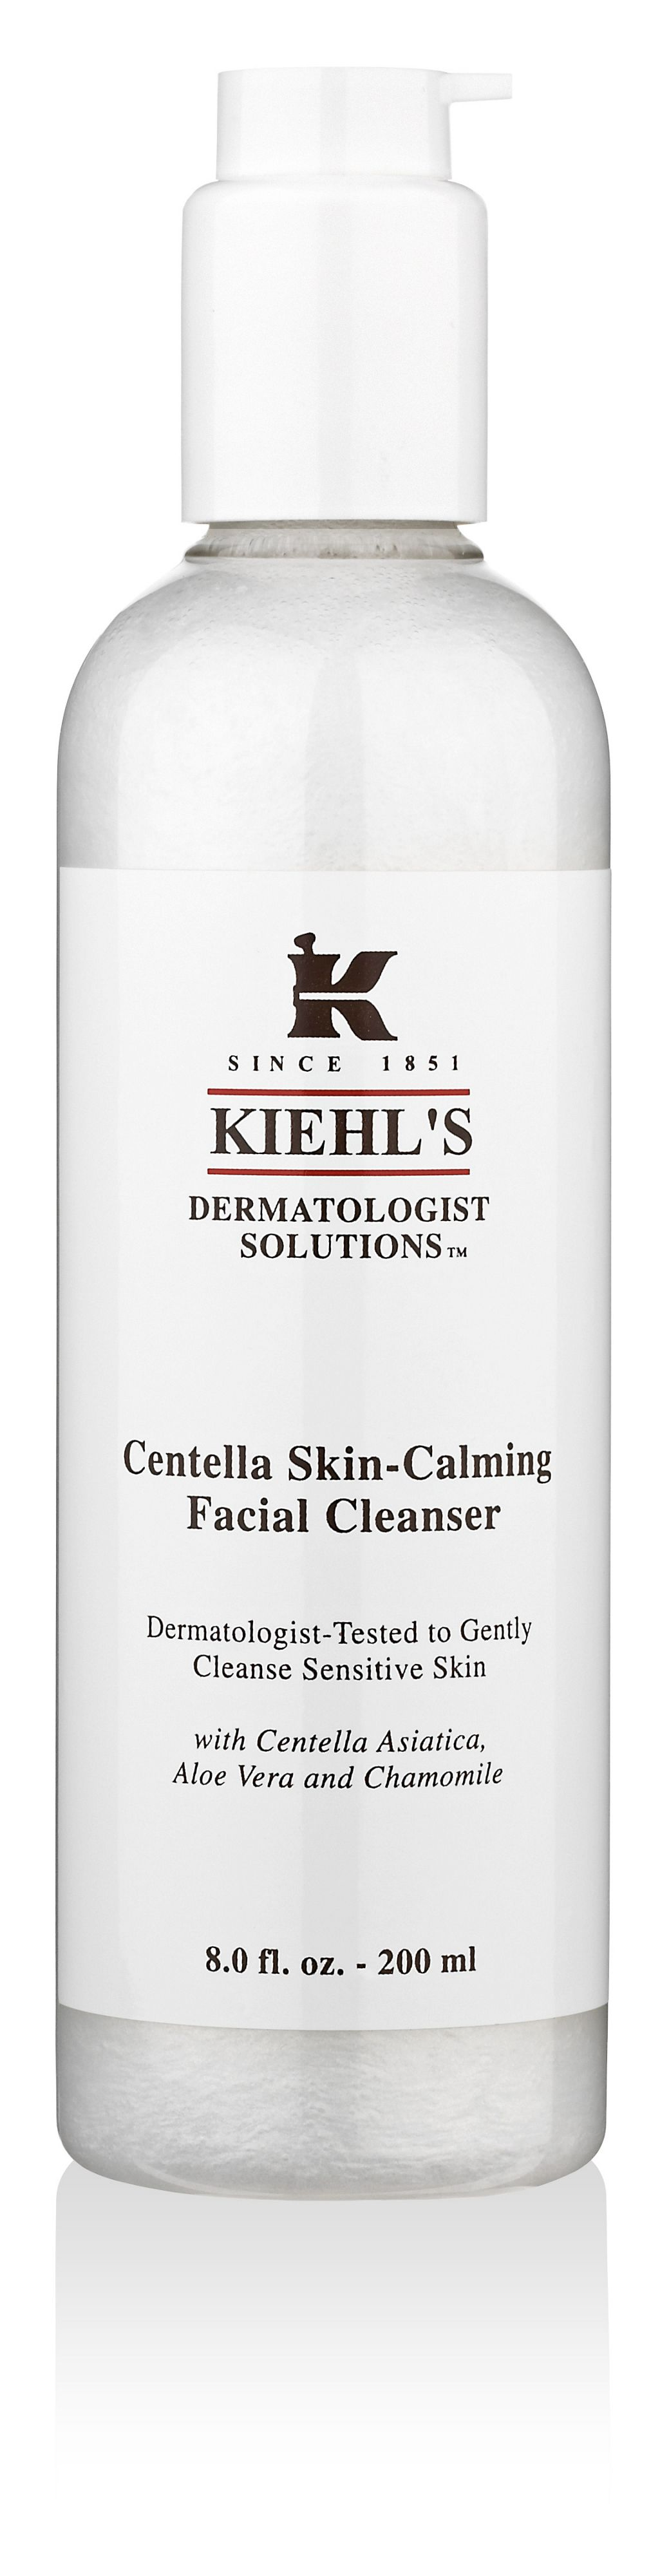 Centella Skin-Calming Facial Cleanser, 200ml